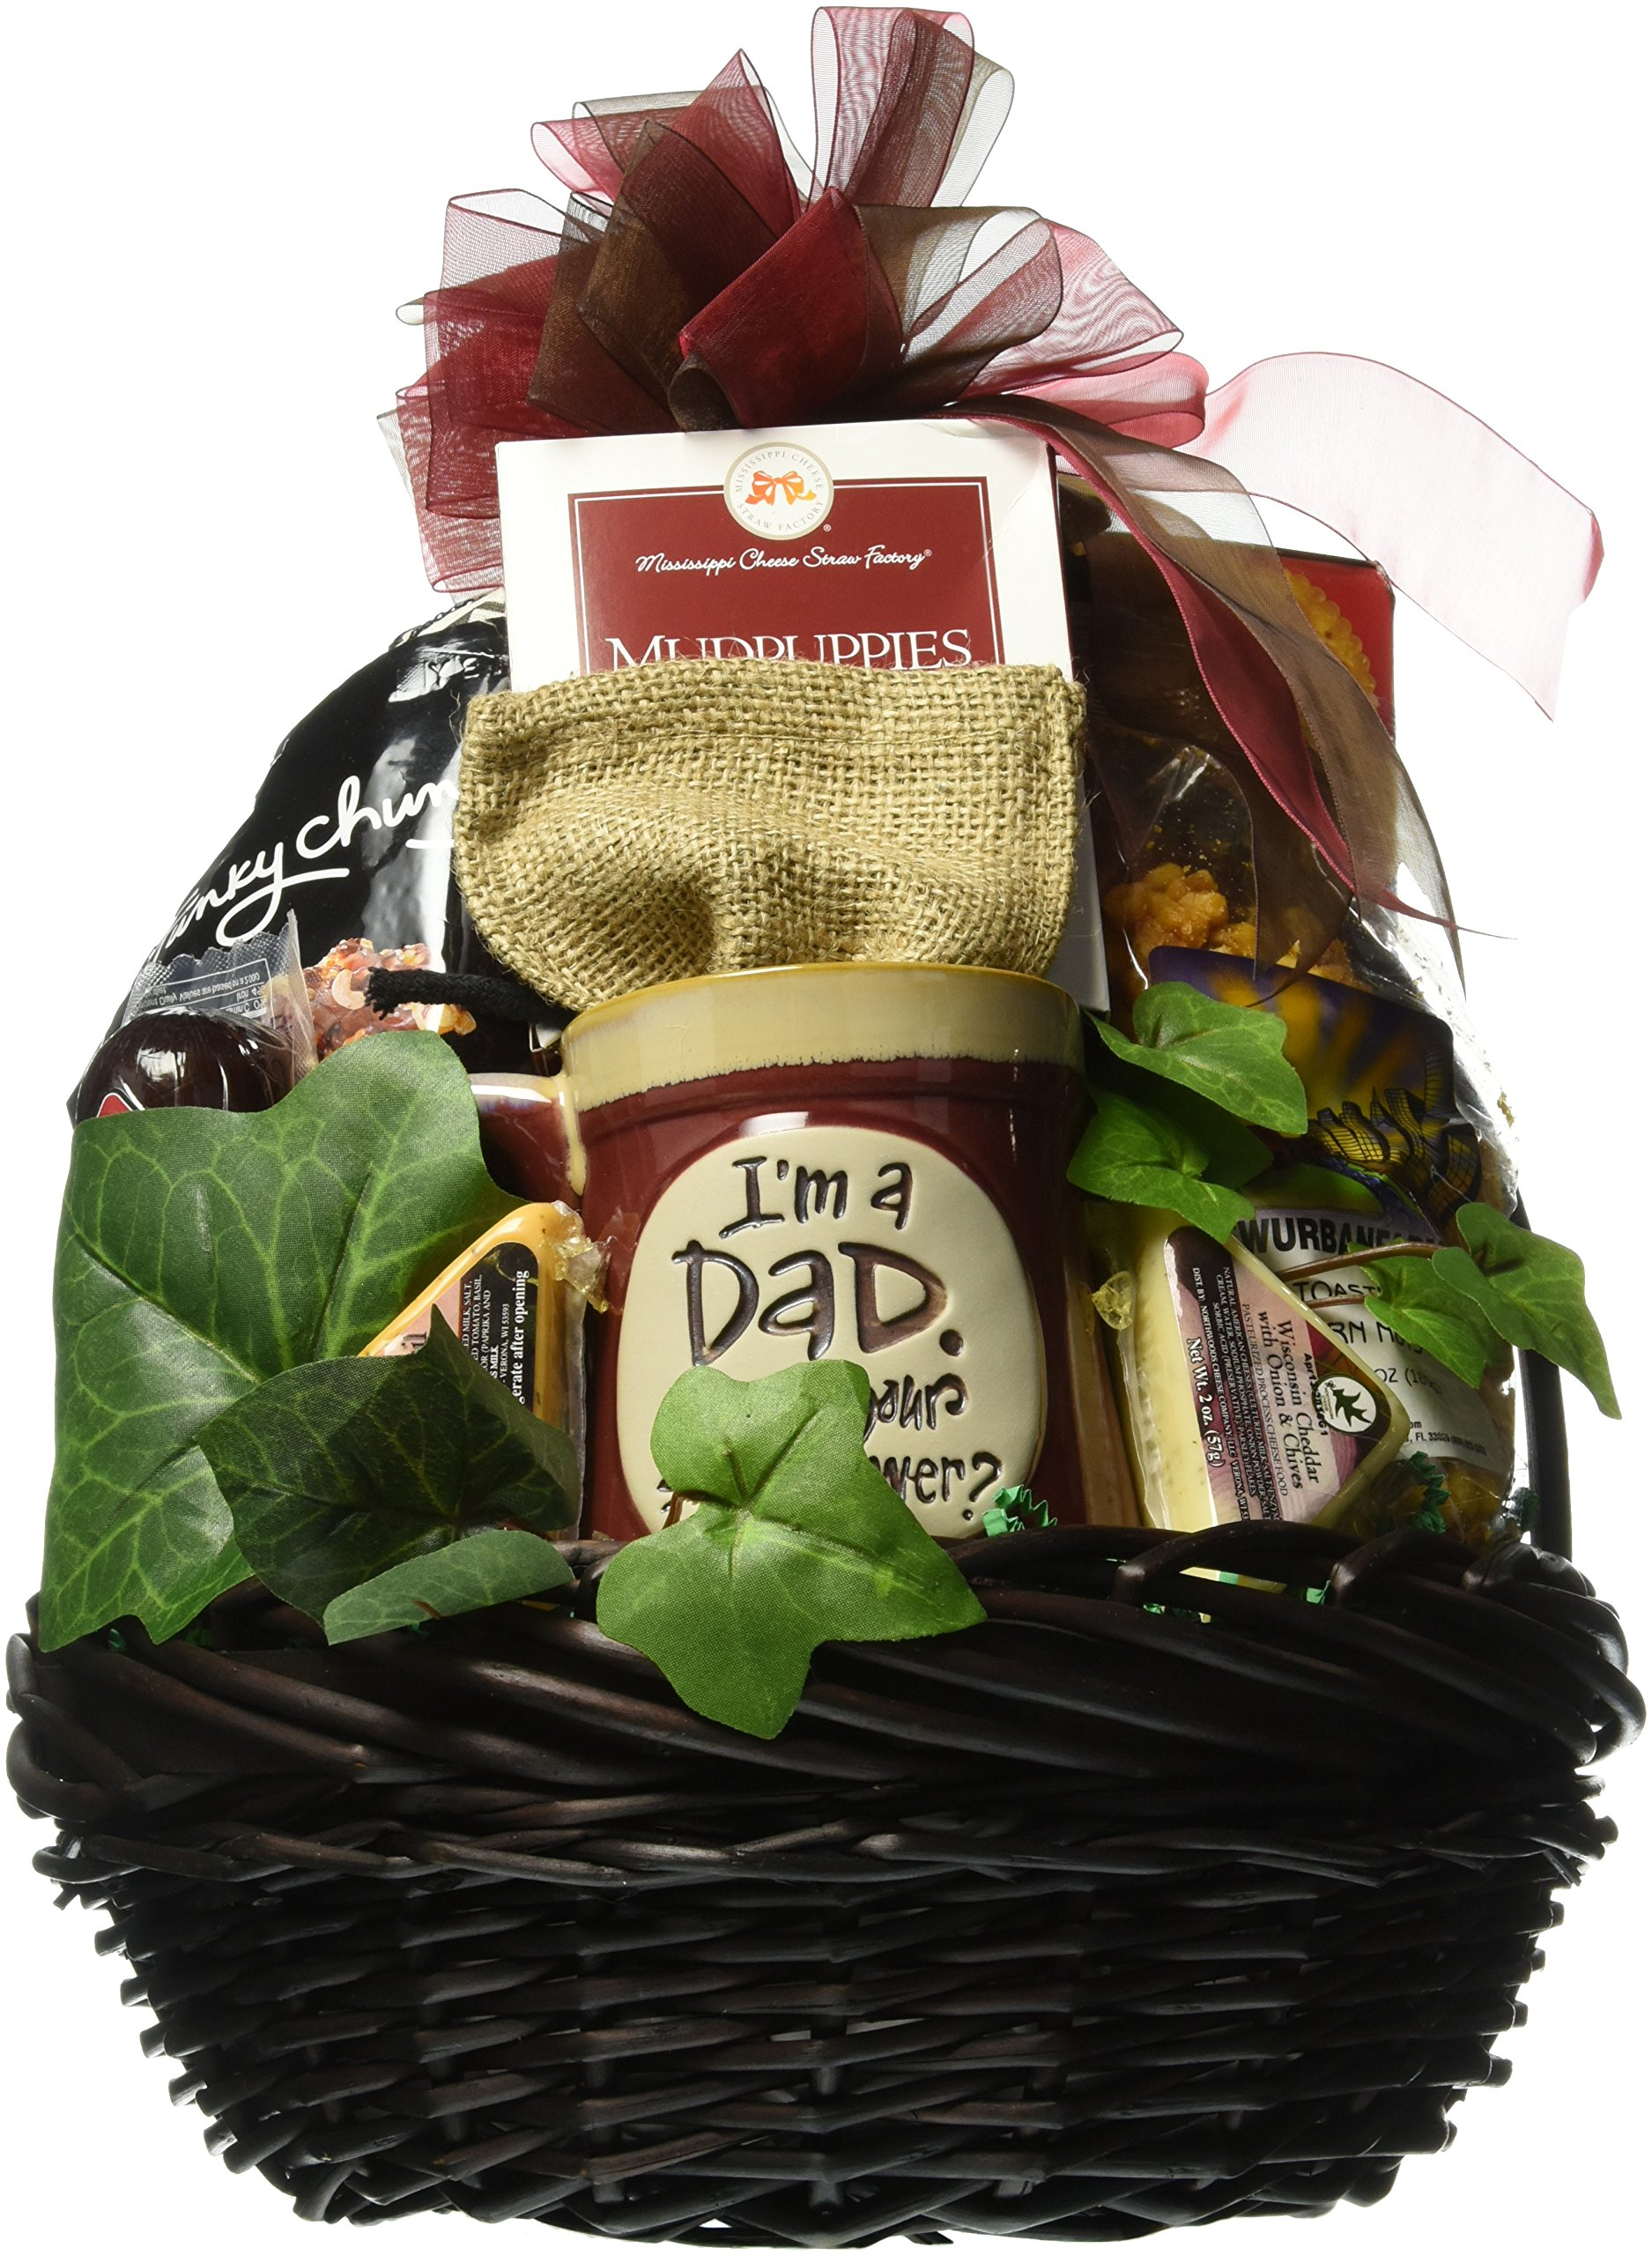 Gift Basket Village - A Great Dad! Gift Basket for Dad's - Loaded With Dad-Snacks, Makes A Great Birthday Or Father's Day Gift Basket For Dad